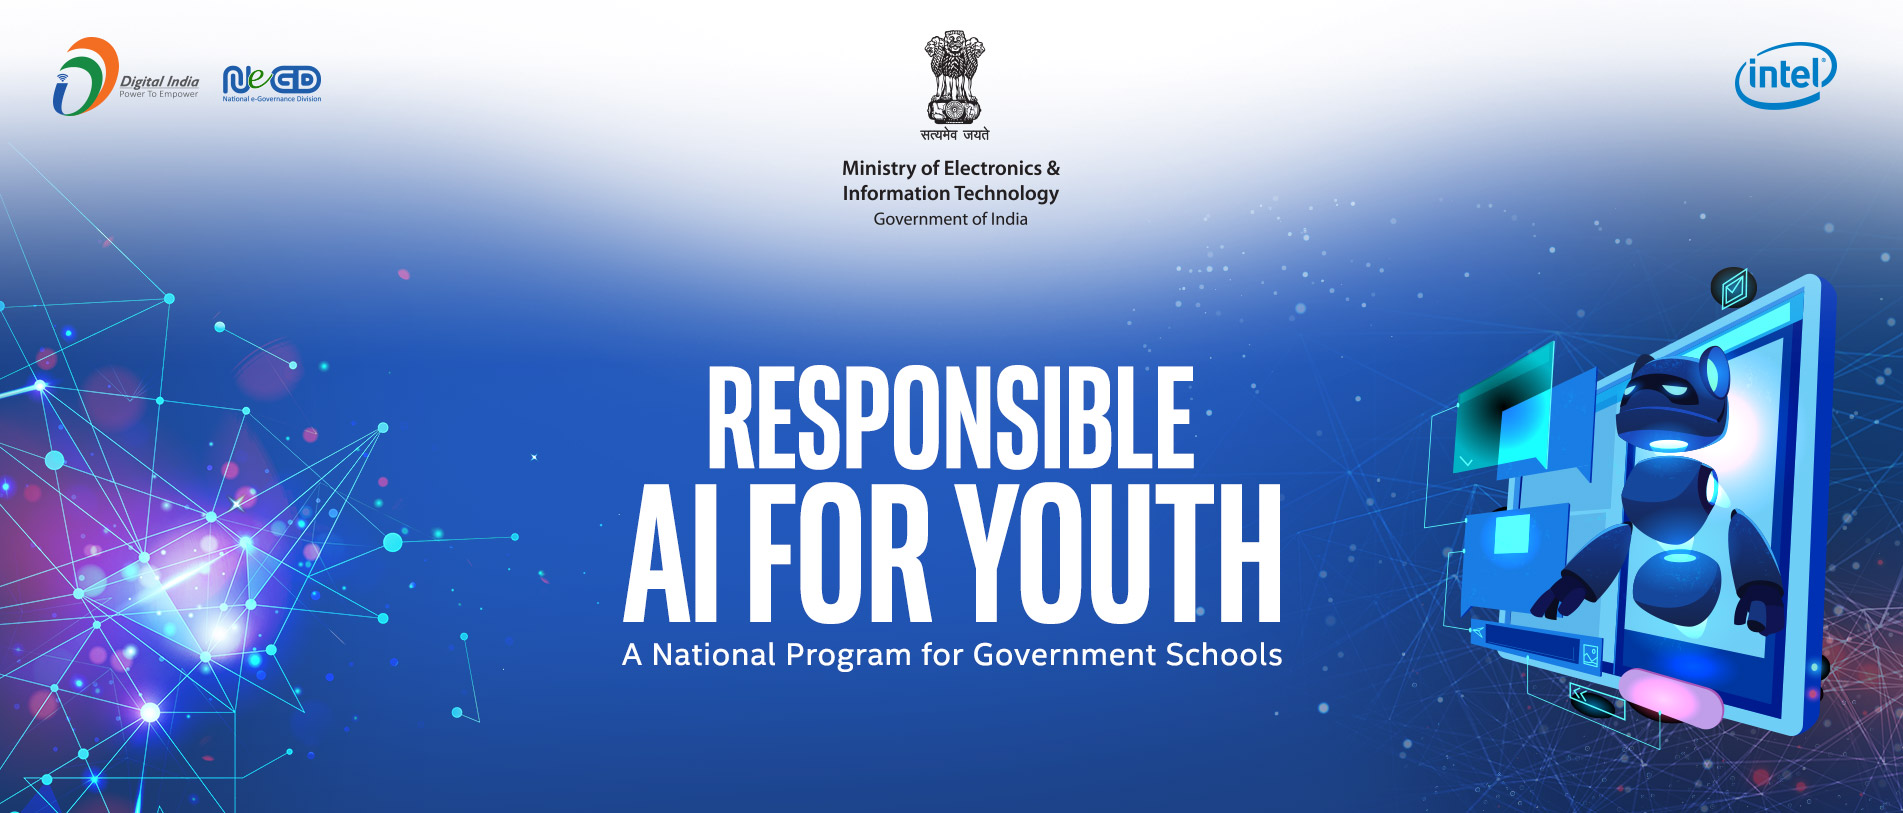 Responsibleaiforyouth